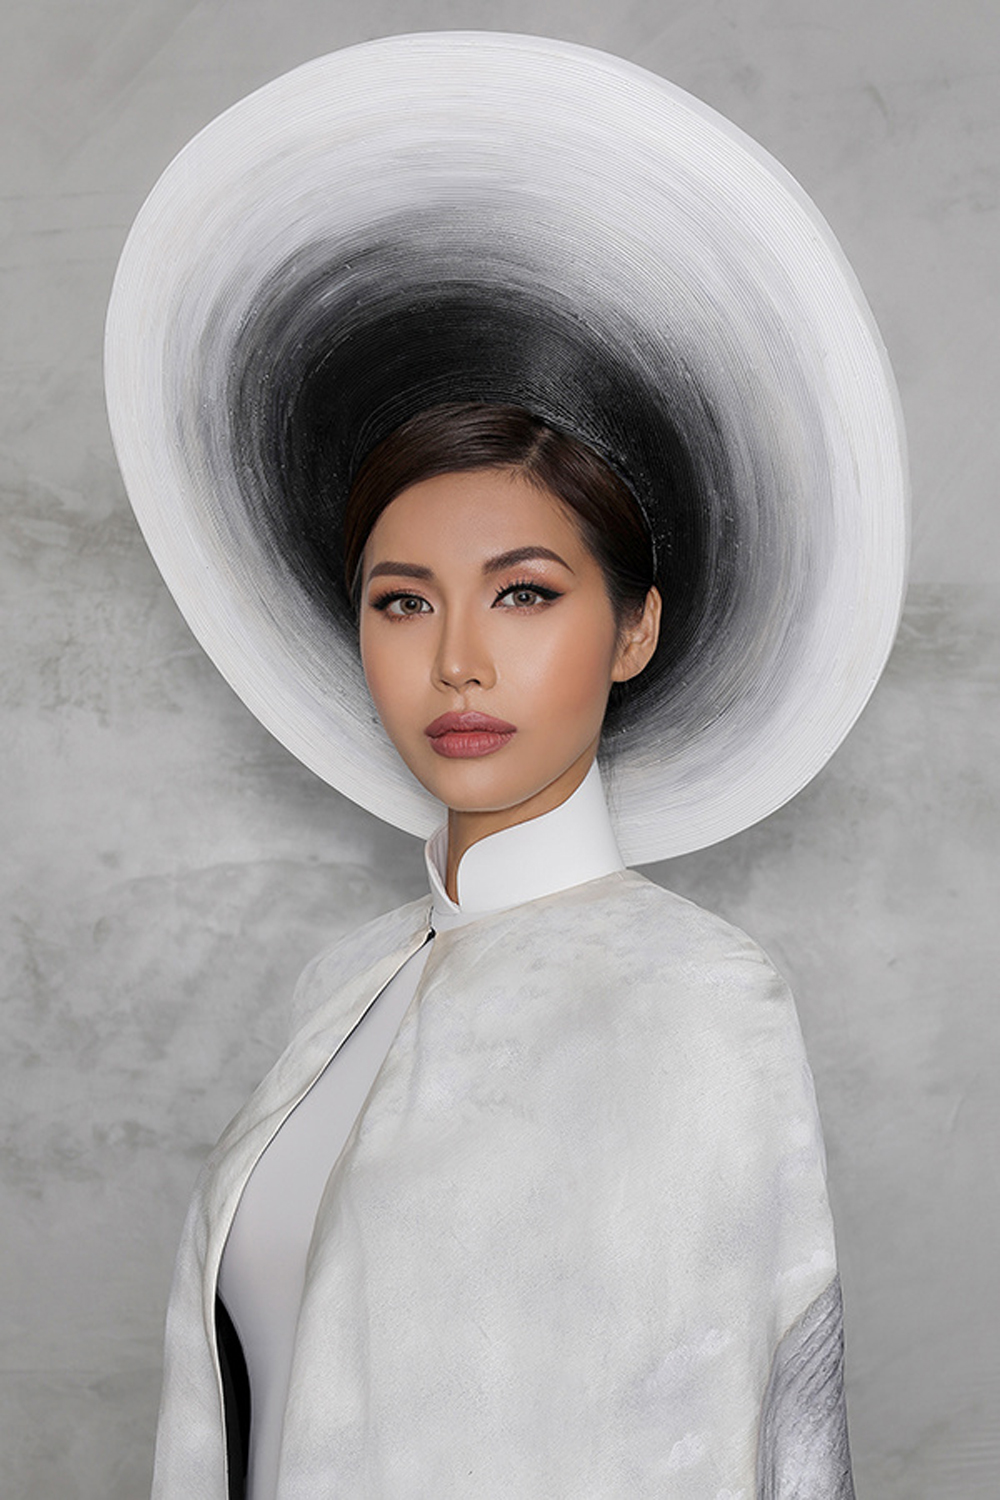 Vietnamese beauty, Minh Tu, most beautiful old woman, Miss Supranational 2018, Poland, iconic photo, hidden smile, national costume segment